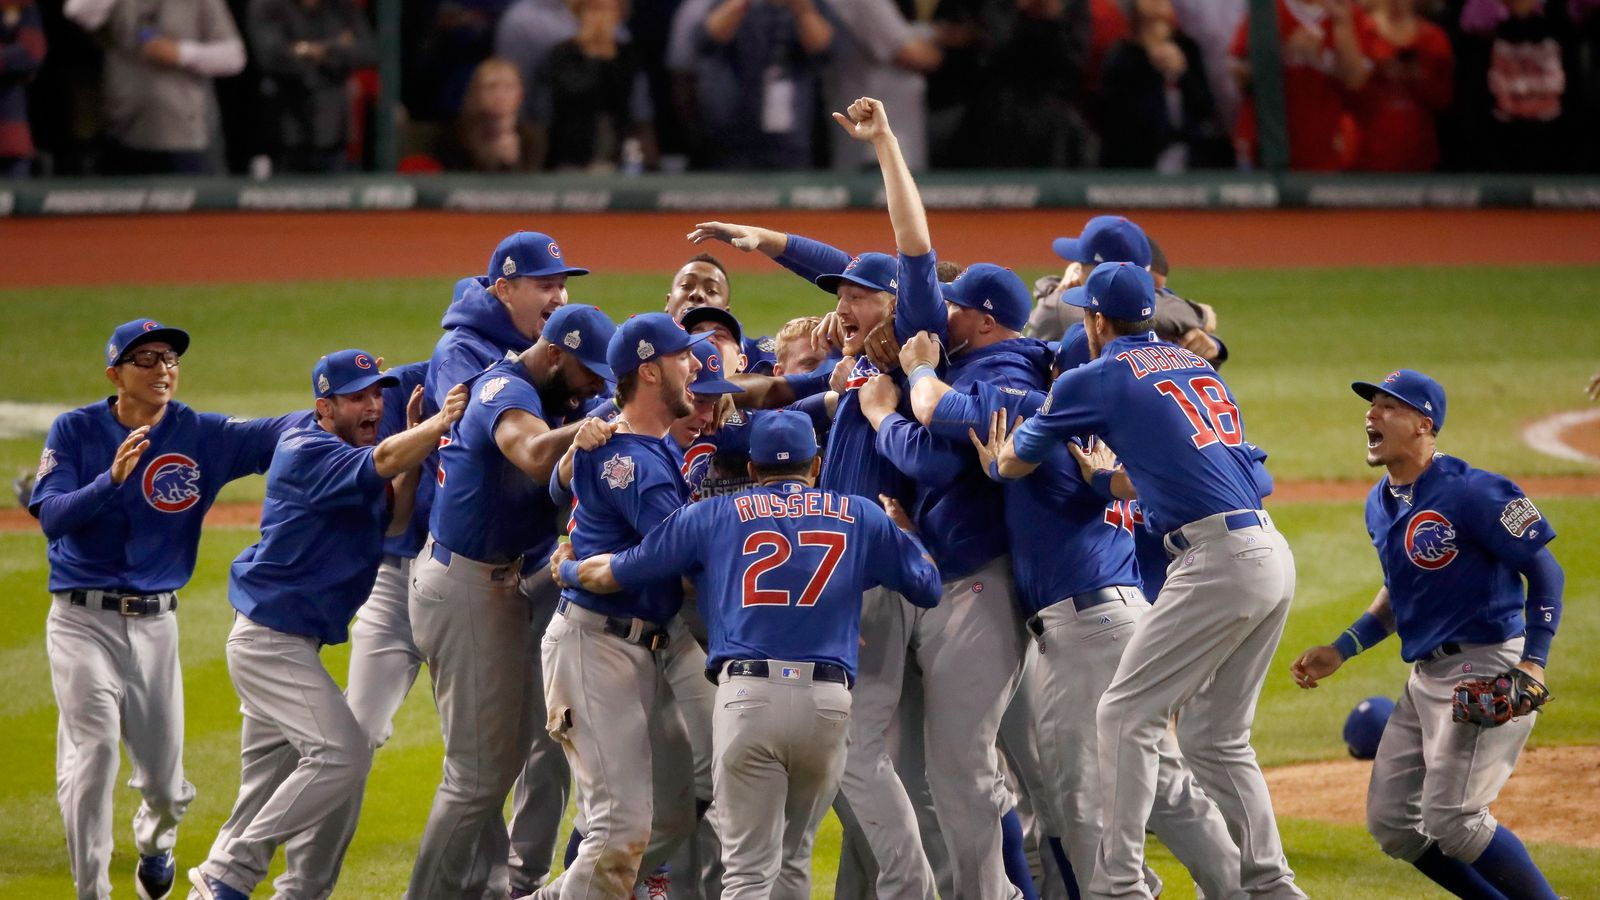 Cubs Vs Indians 2016 Final Score Chicago Wins Game 7 In